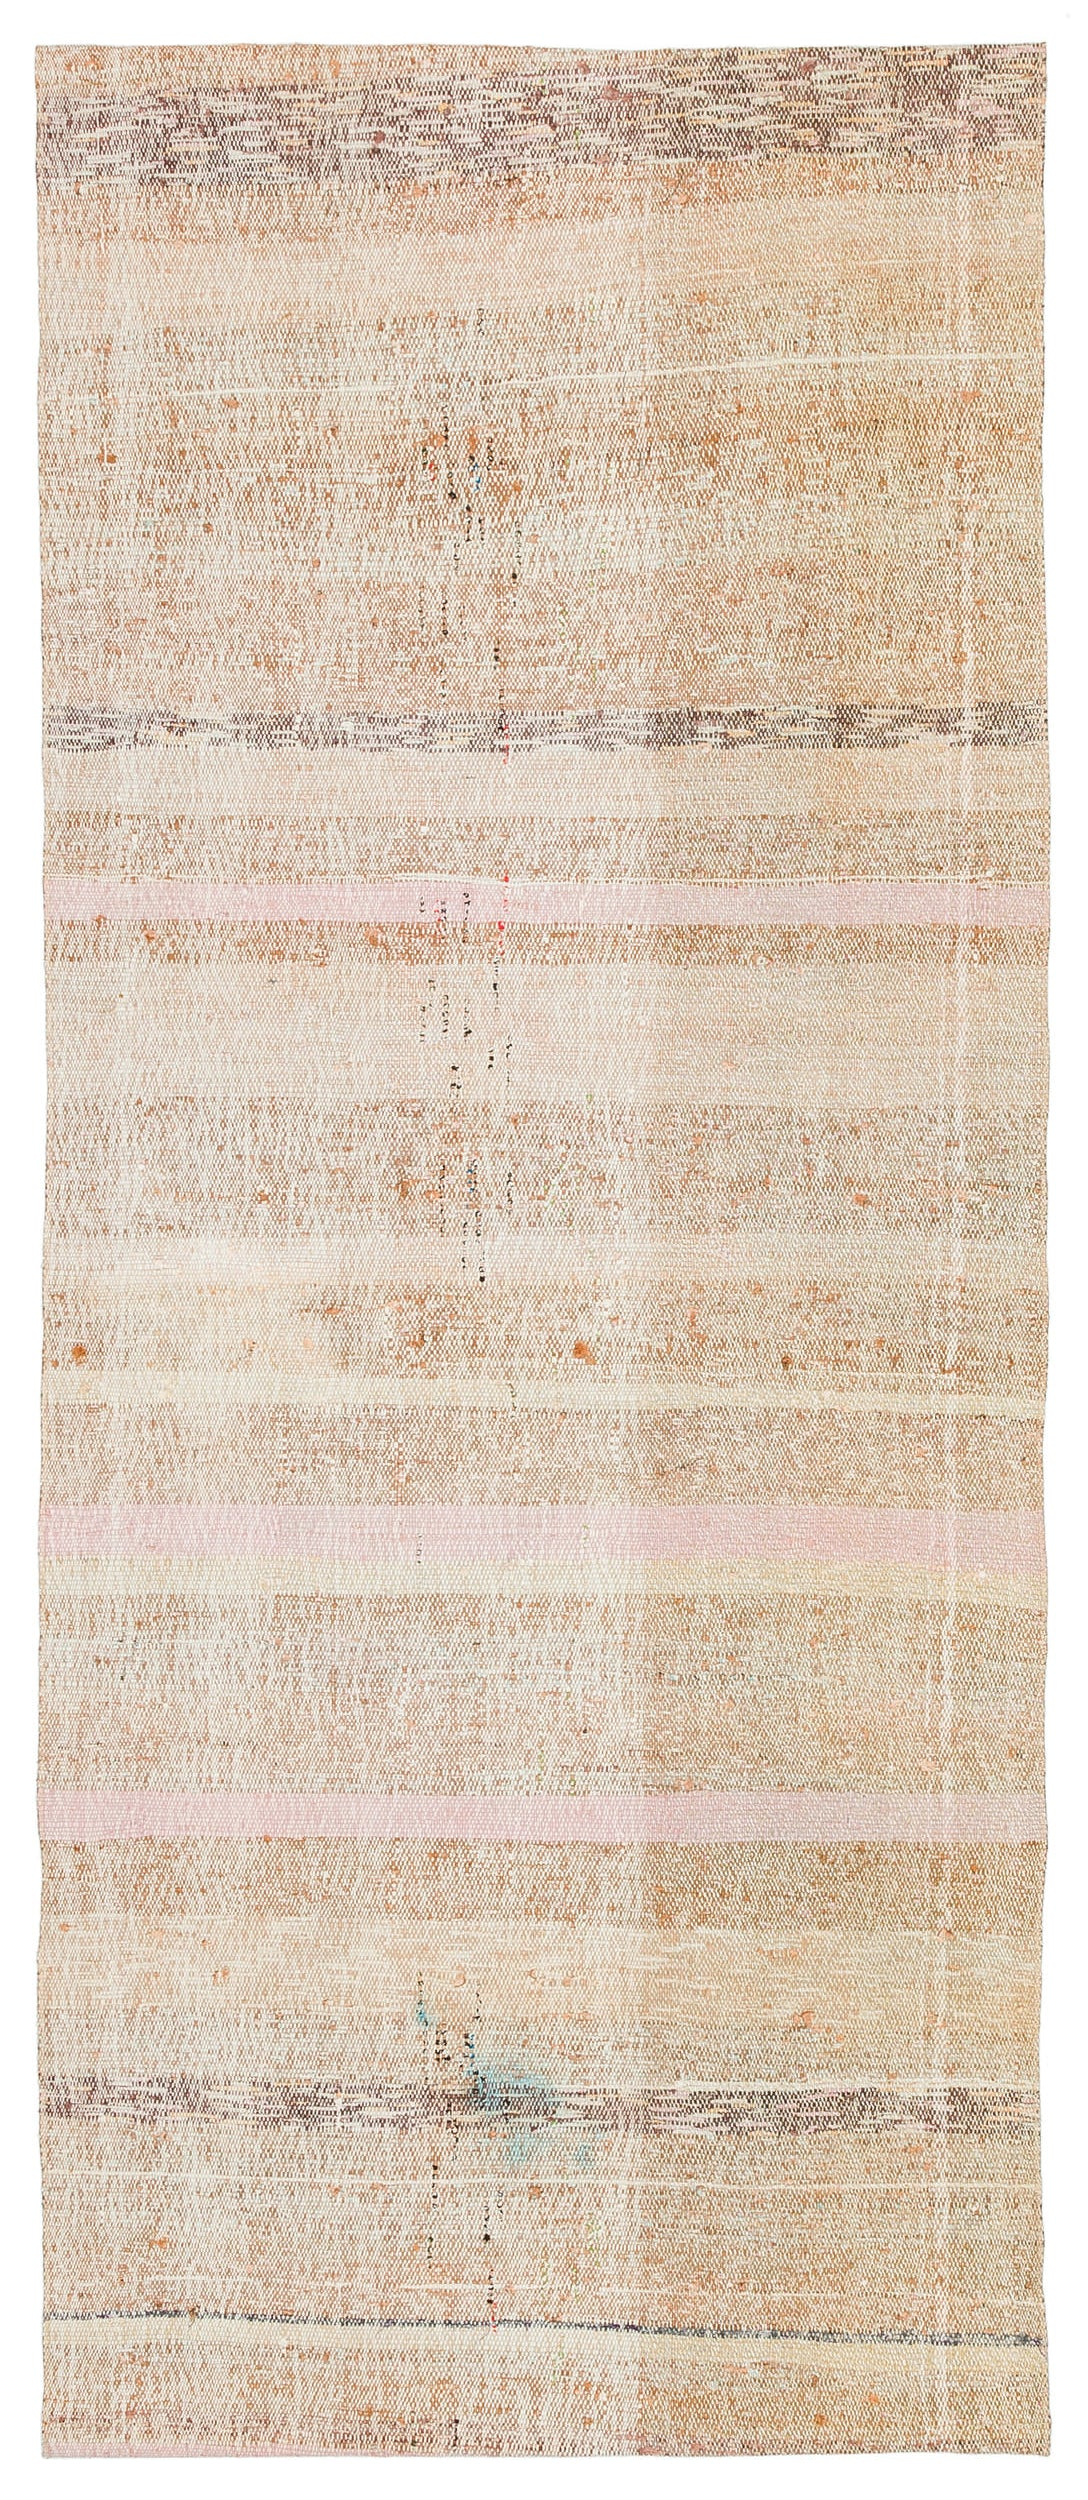 Chaput Over Dyed Kilim Rug 2'6'' x 6'2'' ft 77 x 187 cm